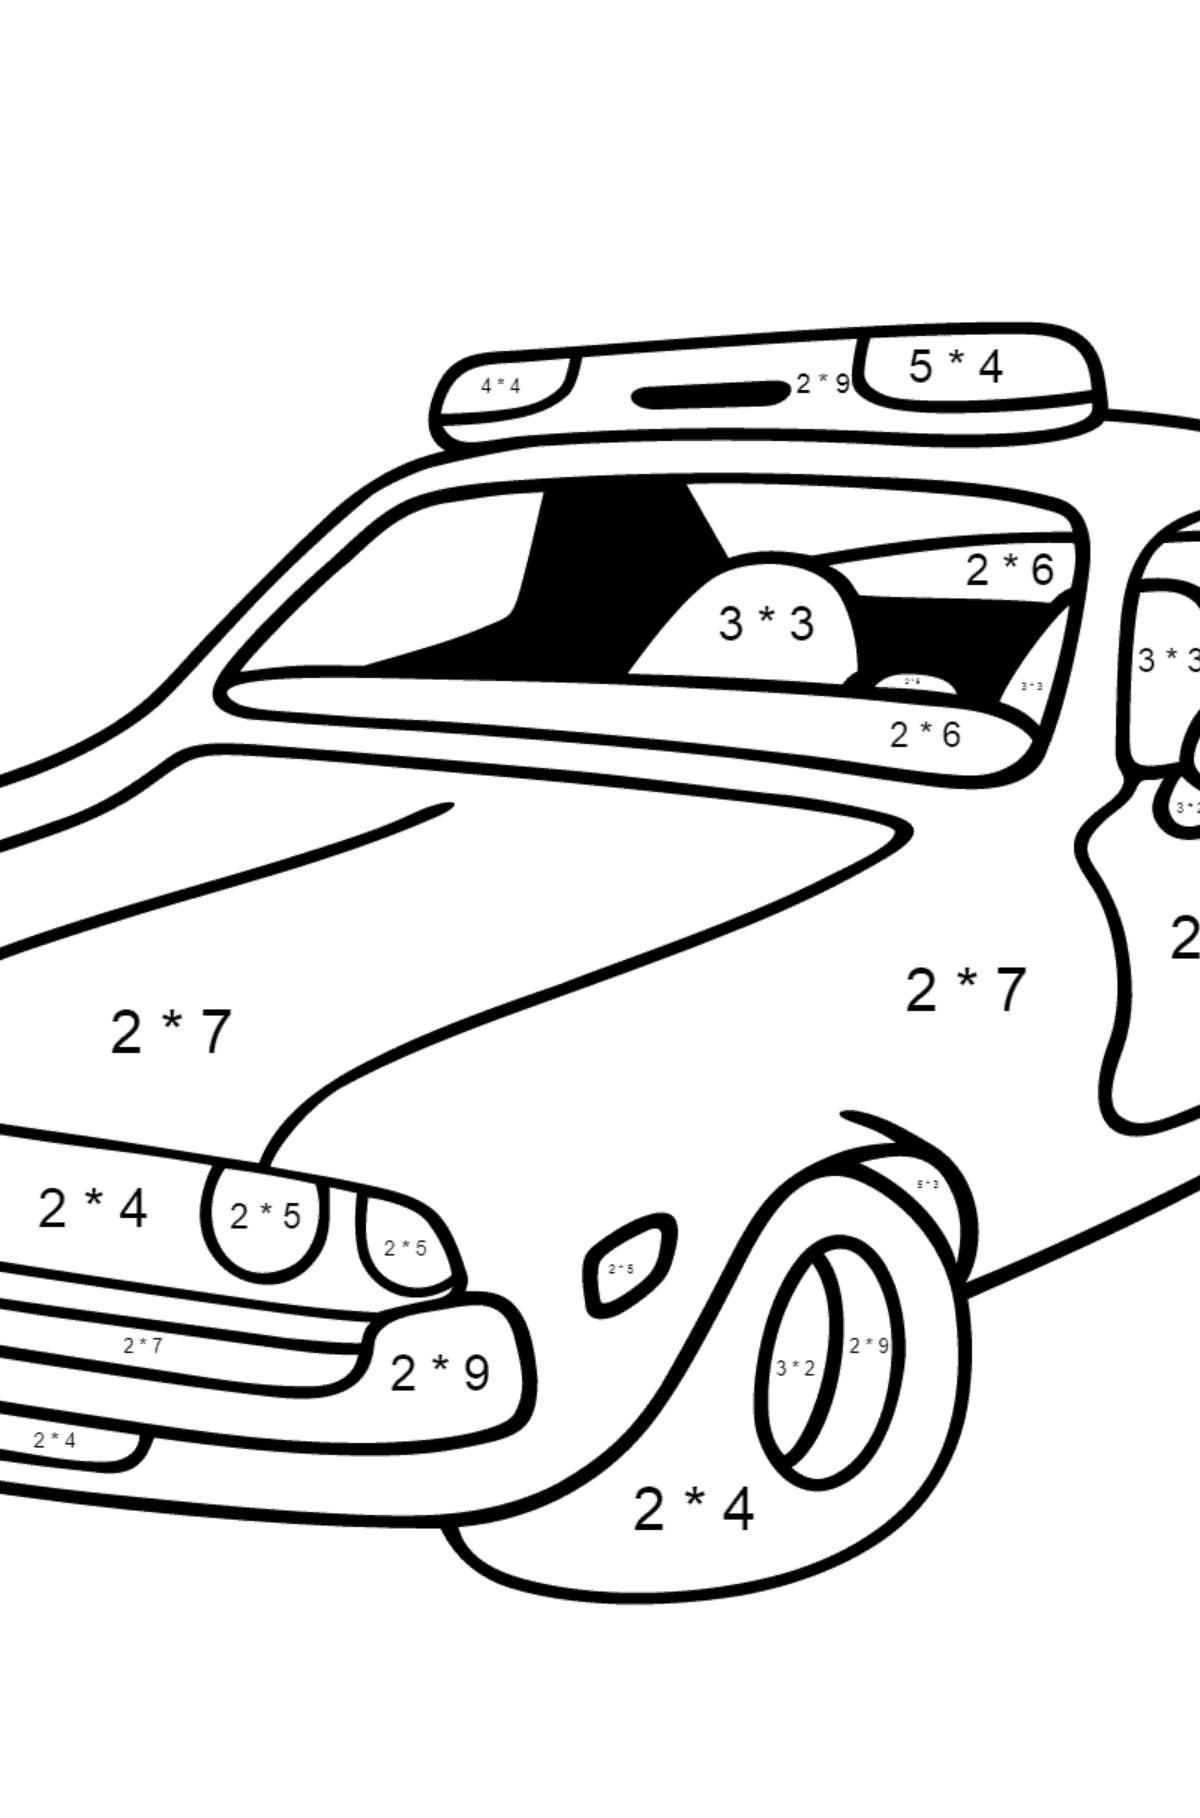 Coloring Page - A Red Police Car for Children  - Color by Number Multiplication